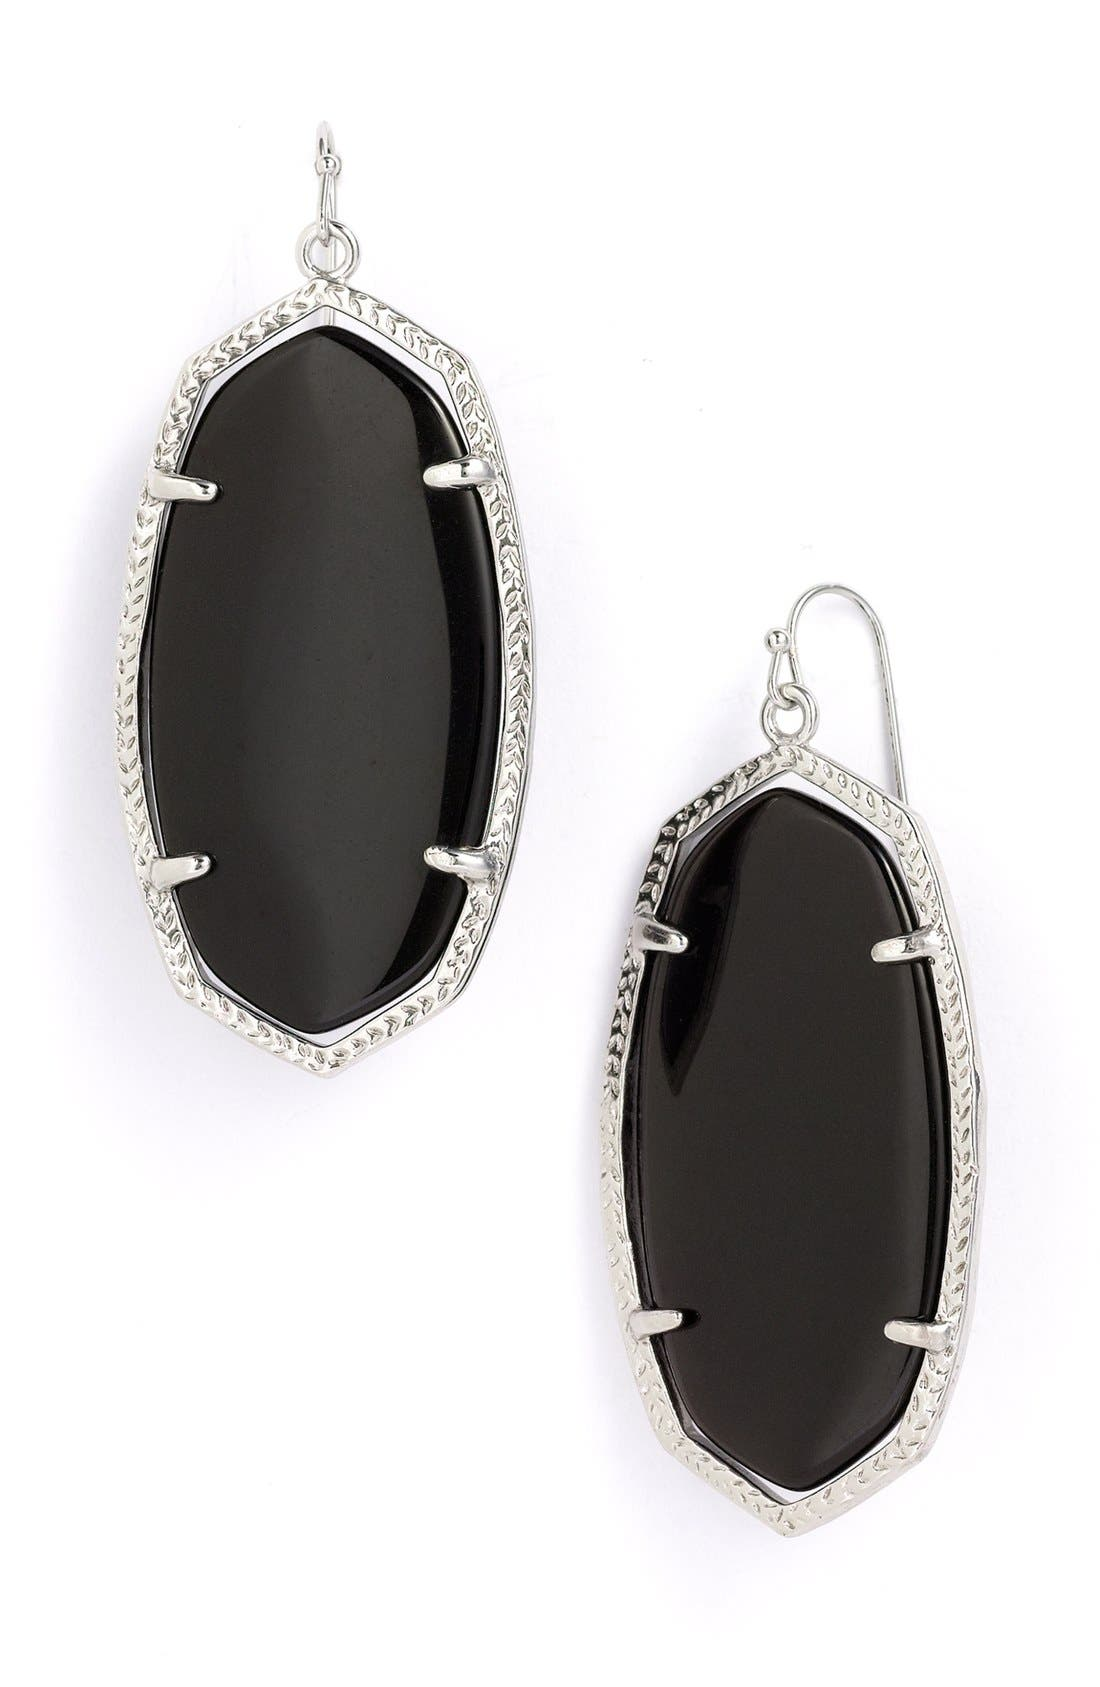 Danielle - Large Oval Statement Earrings,                             Alternate thumbnail 125, color,